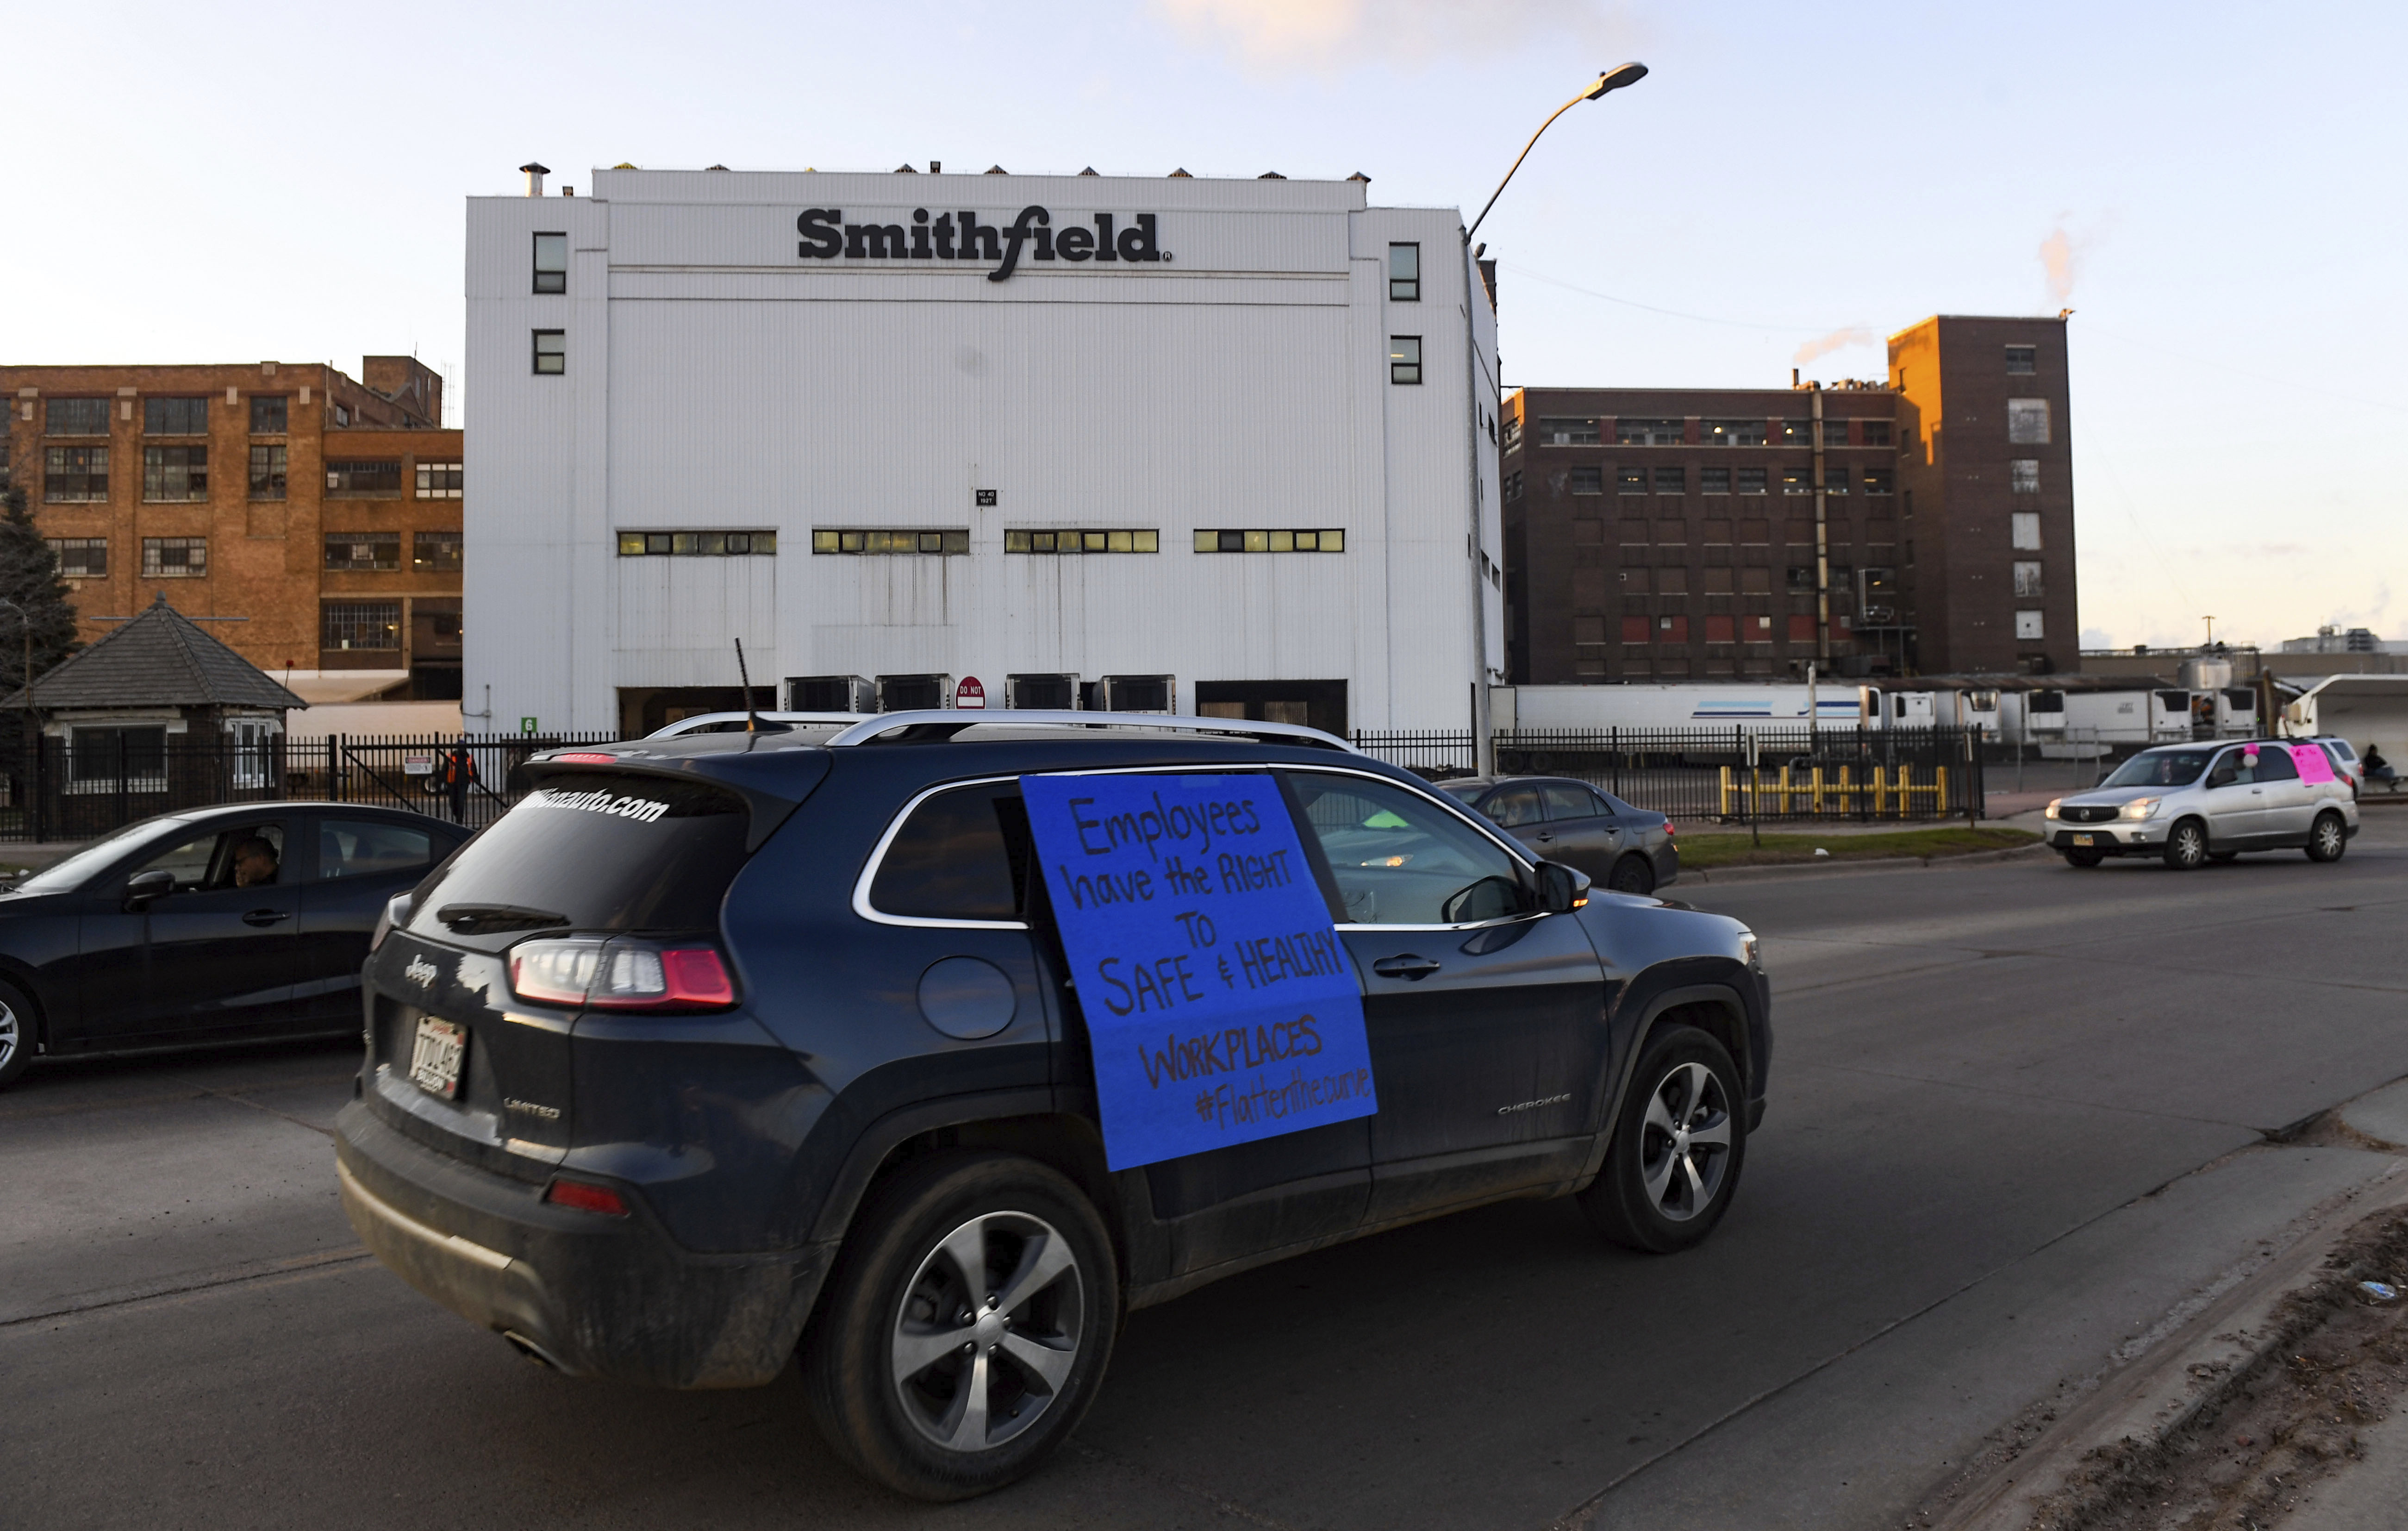 In this Thursday, April 9, 2020 photo, a car sporting a sign calling for a safe and healthy workplace drives past Smithfield Foods, Inc. in Sioux Falls. during a protest on behalf of employees after many workers complained of unsafe working conditions due to the COVID-19 outbreak. The pork processing plant in South Dakota is closing temporarily after more than 80 employees tested positive for the coronavirus.